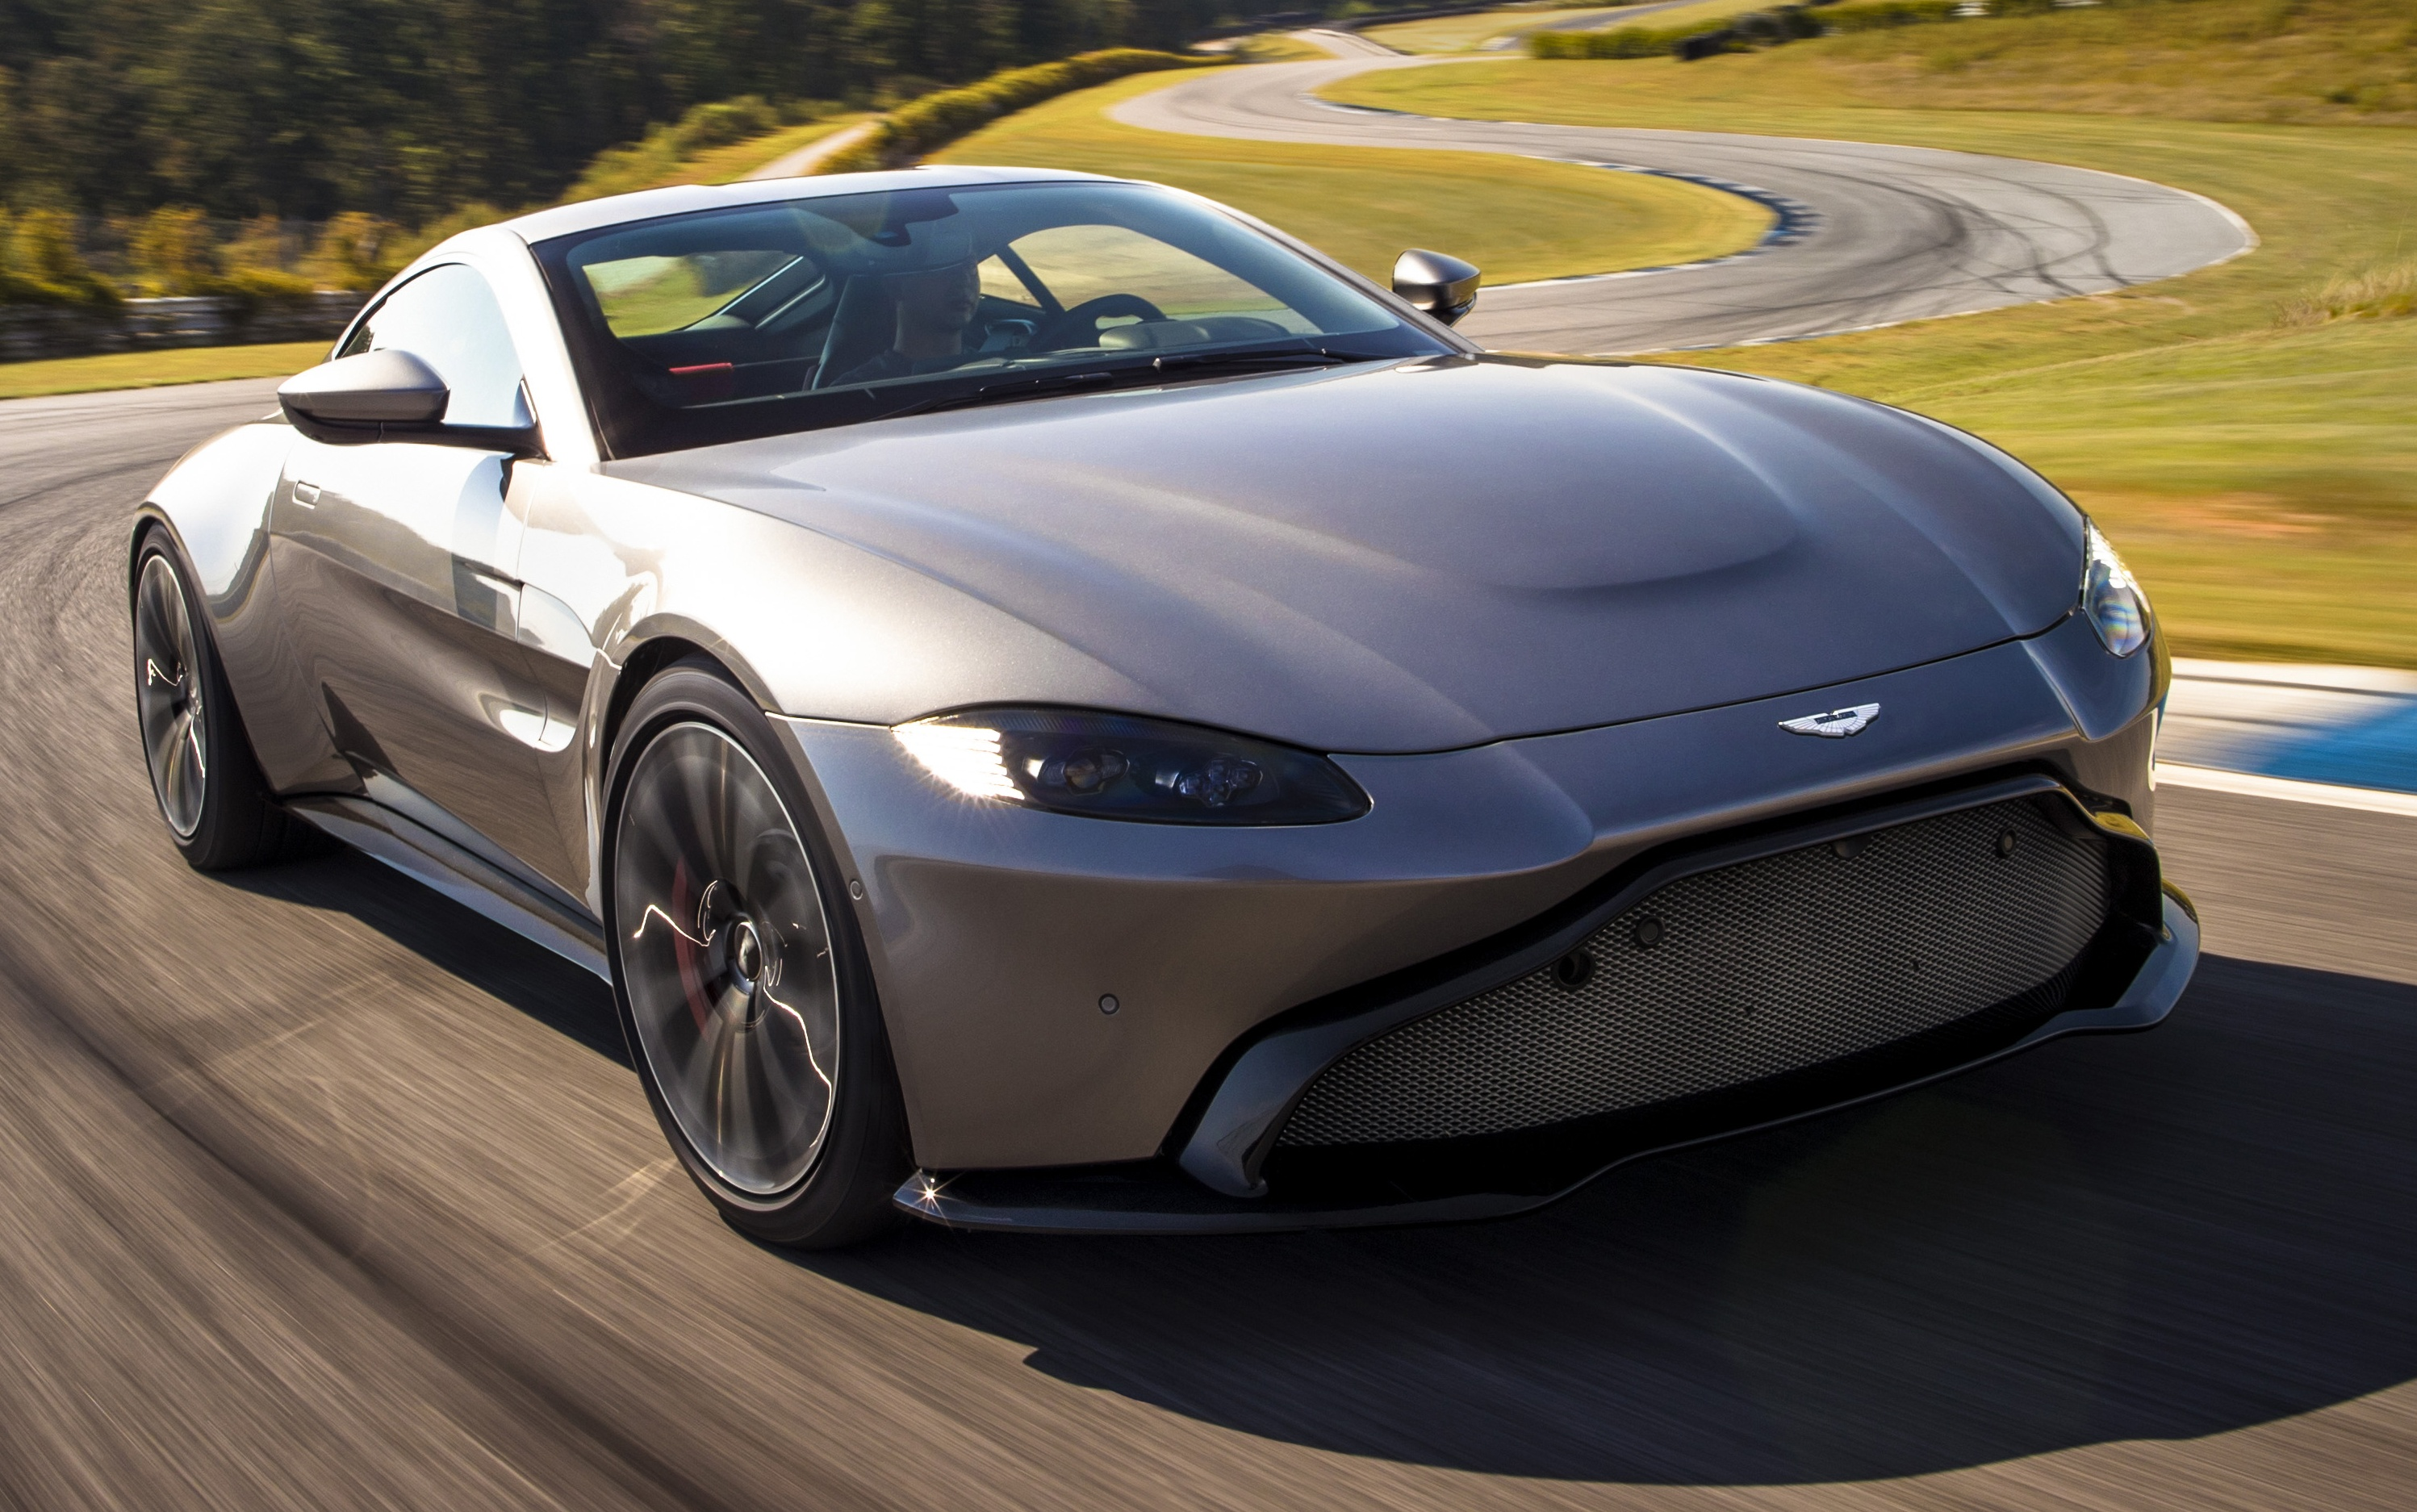 2018 aston martin vantage revealed, packs 510 ps